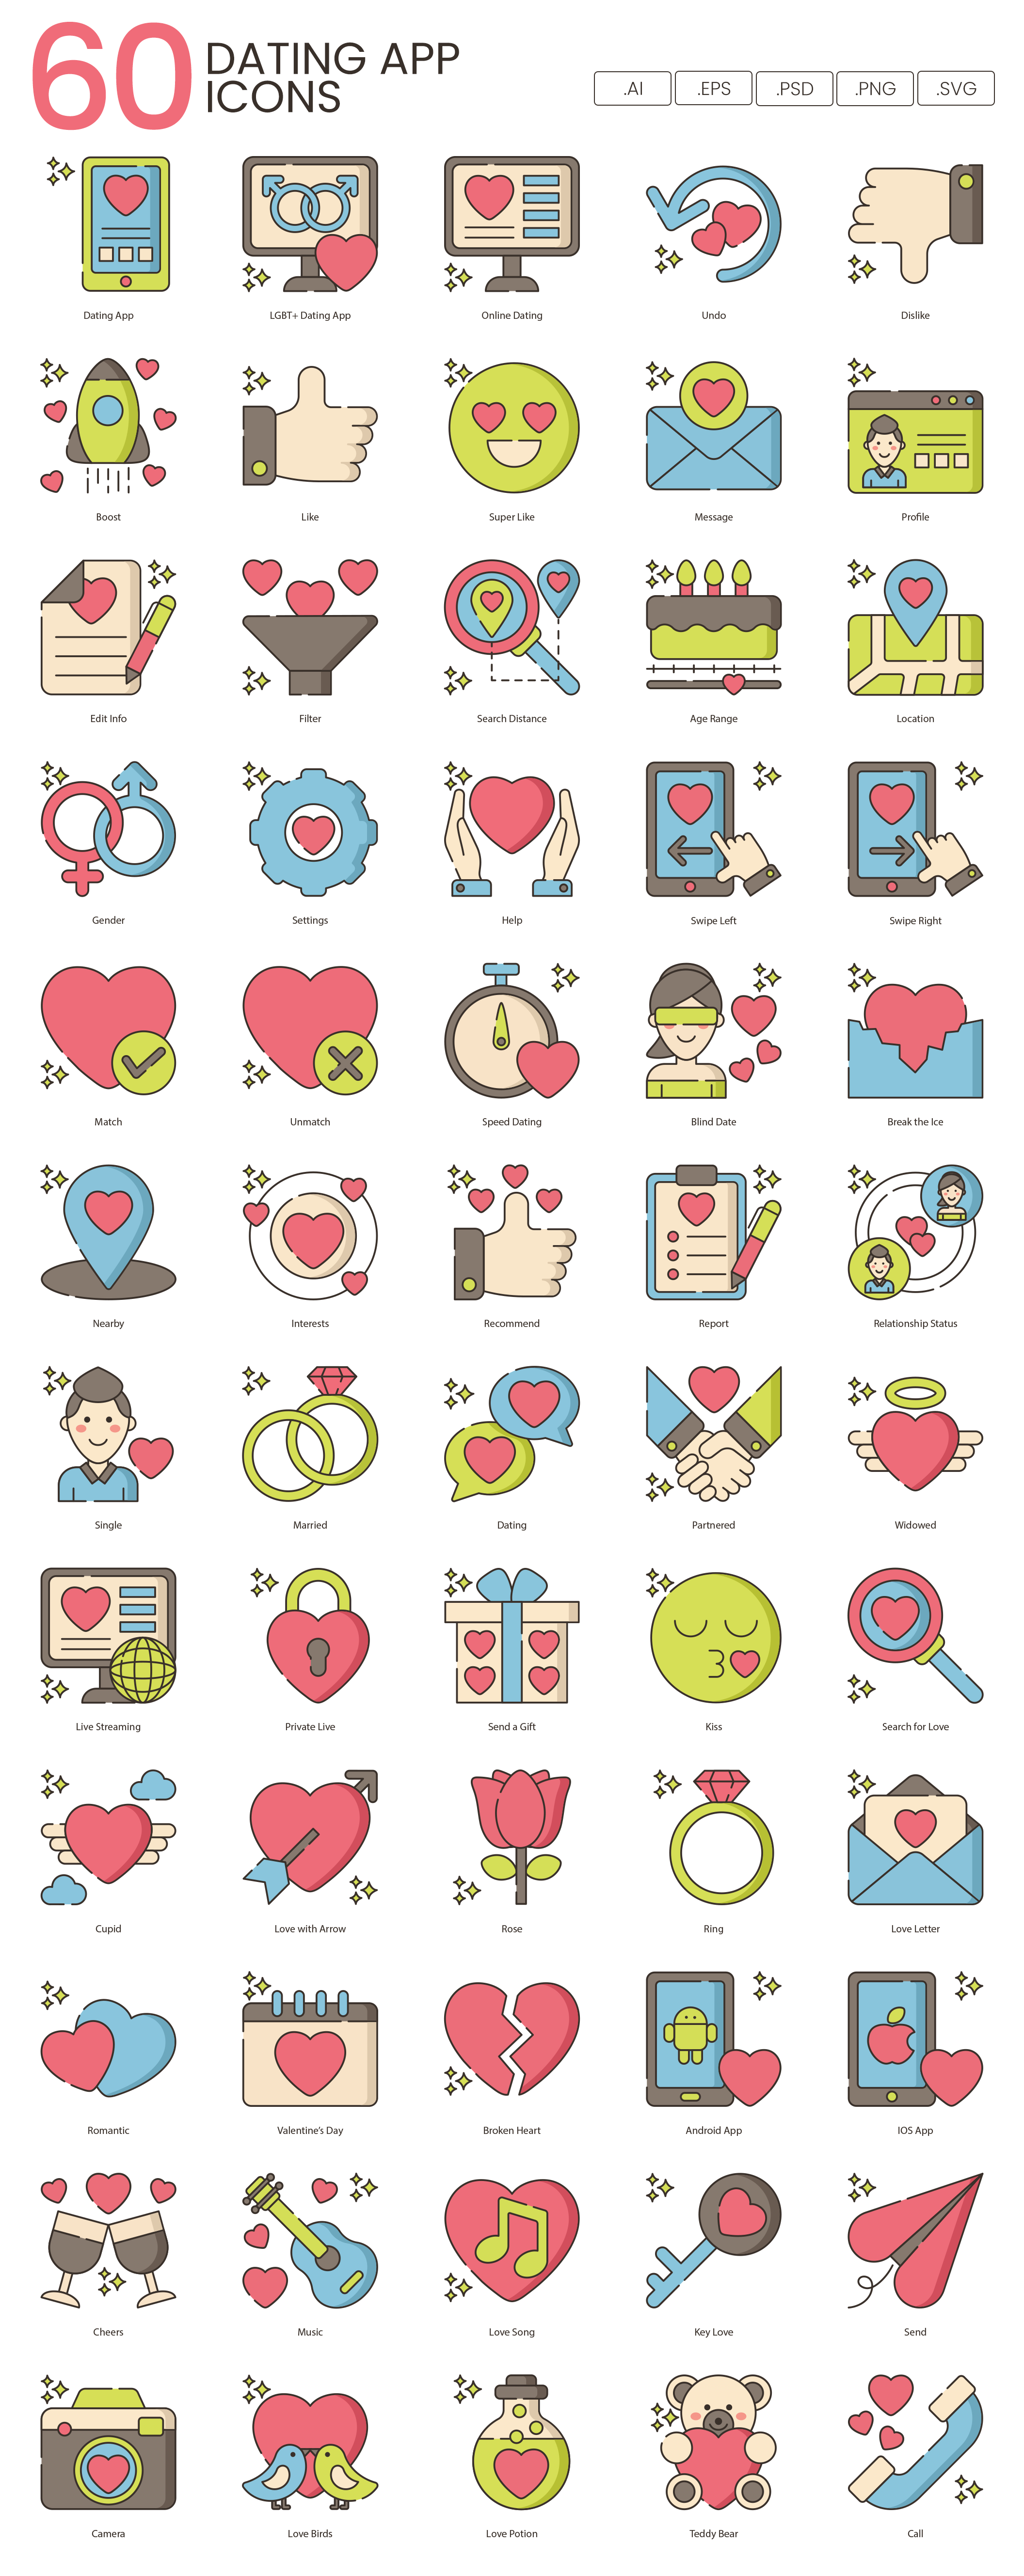 Preview Image for Dating App Icon Set